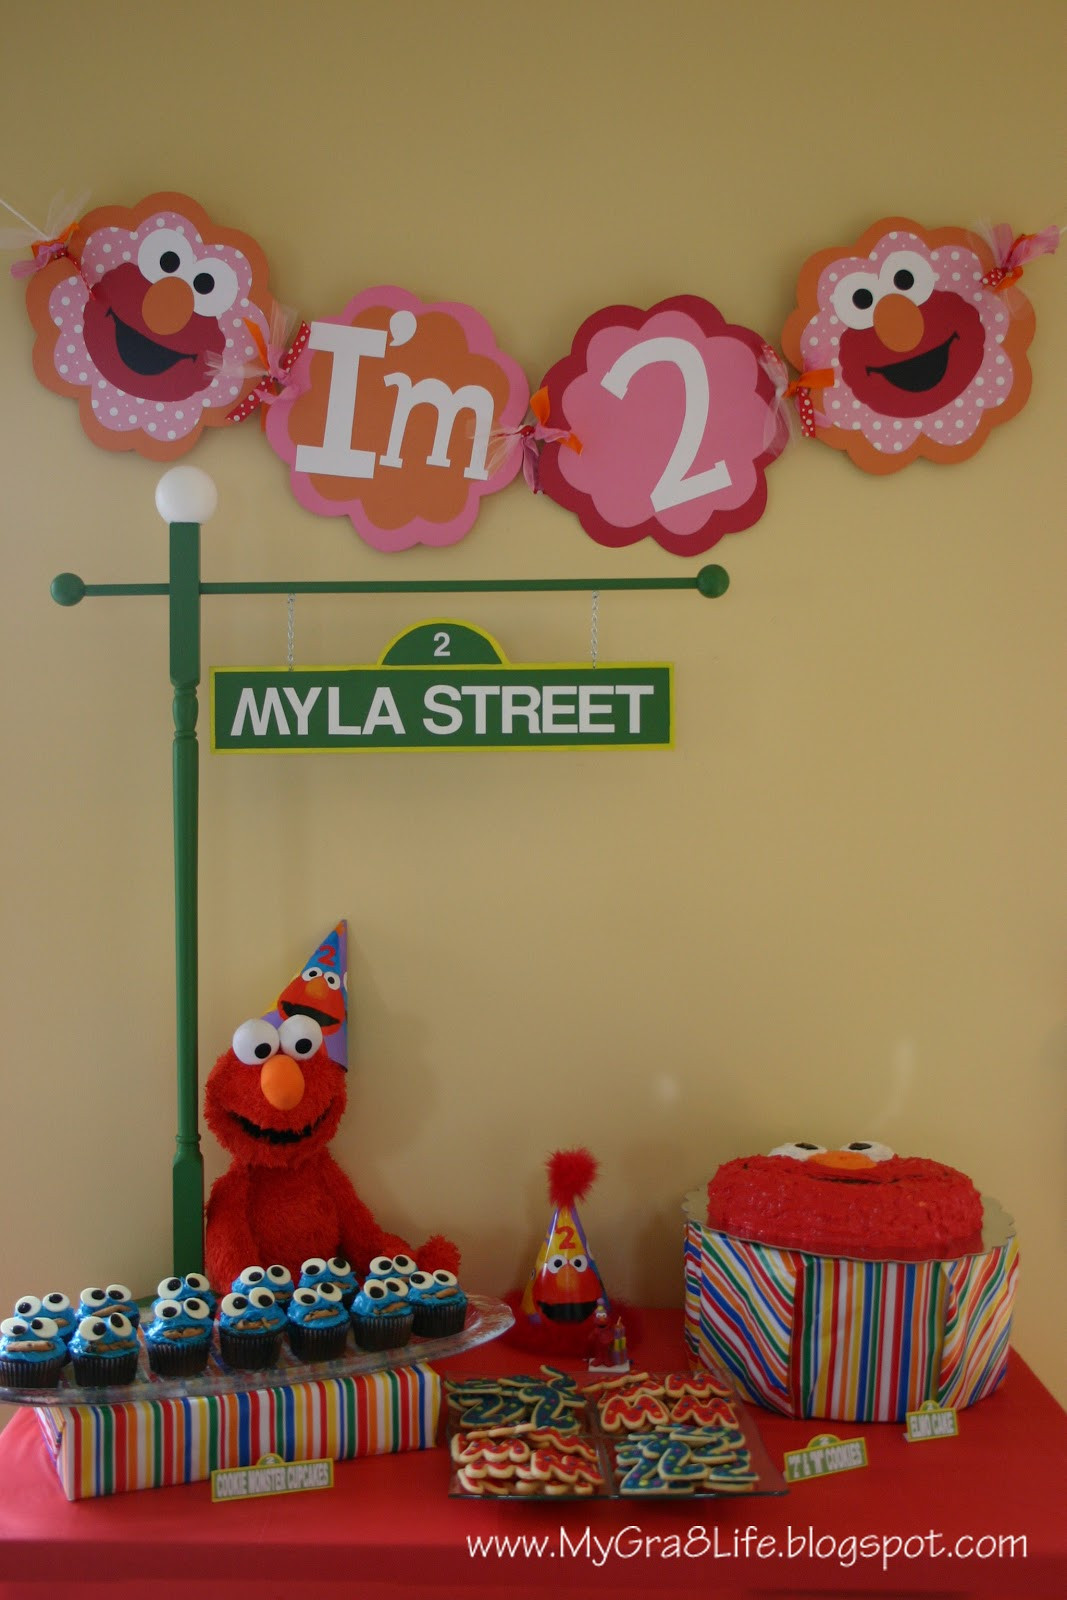 Best ideas about Elmo Birthday Party . Save or Pin My Gra 8 Life Elmo Party Now.